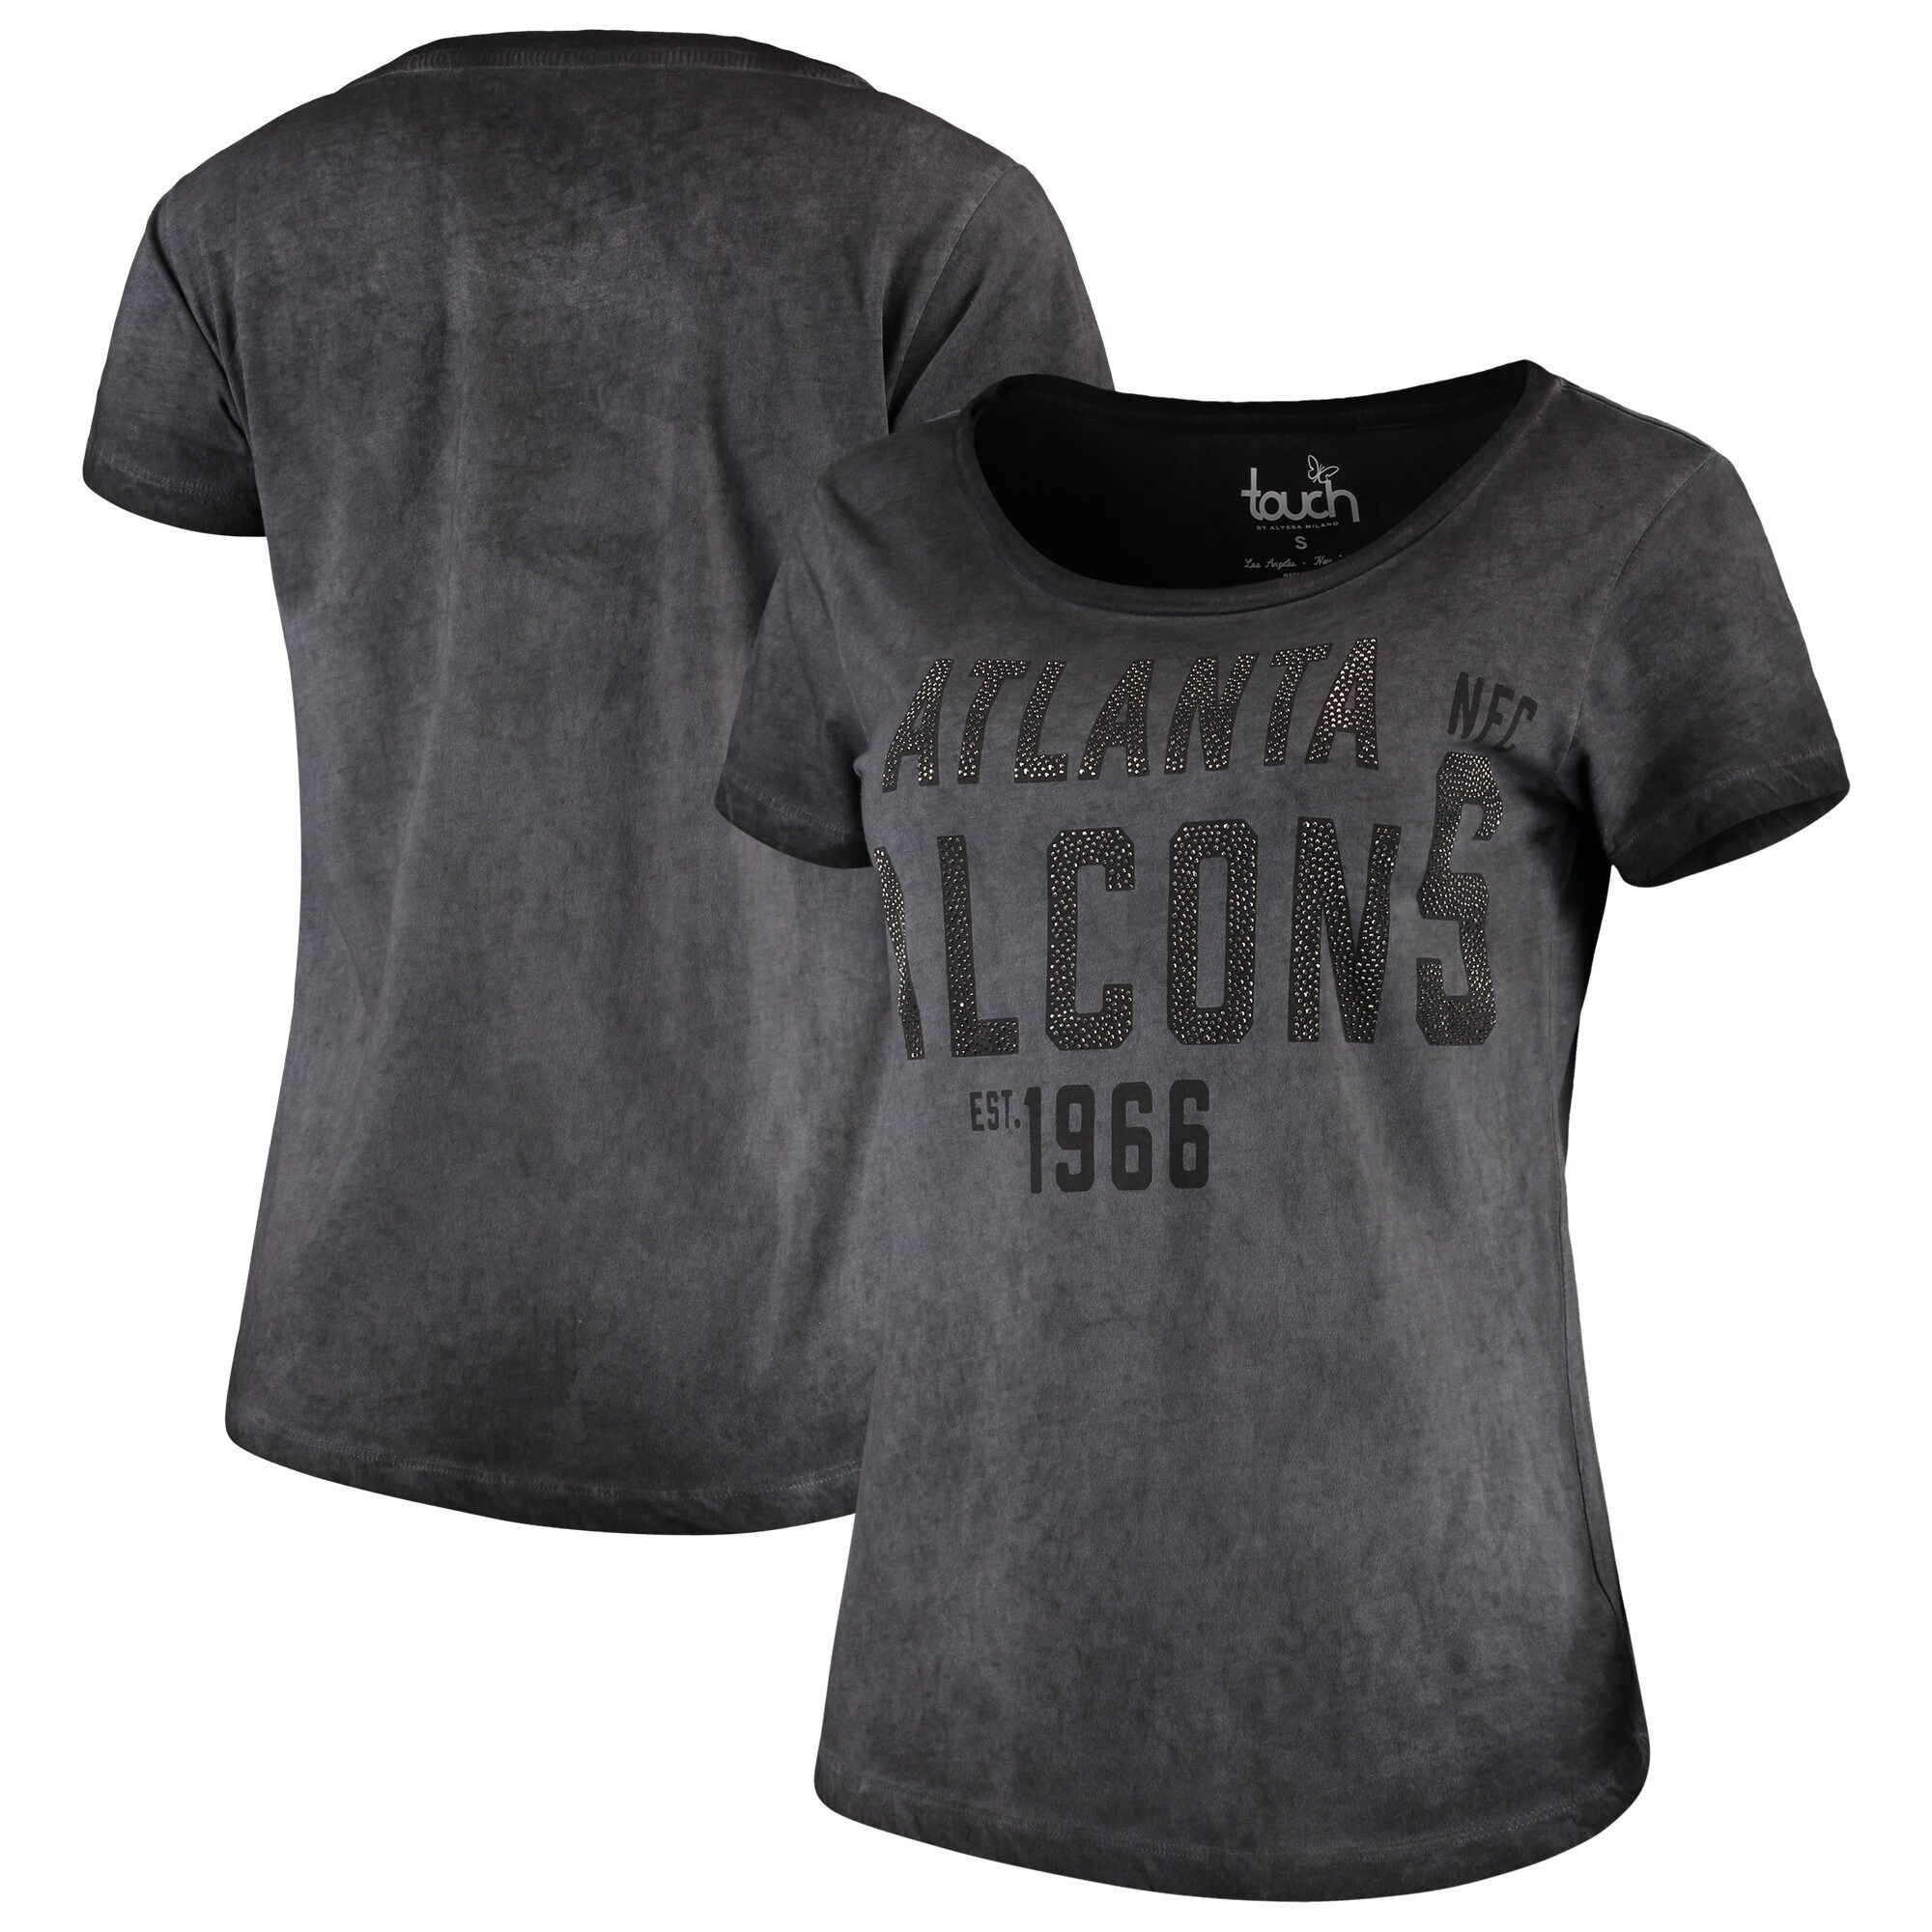 Atlanta Falcons Touch by Alyssa Milano Women's Fade Route T-Shirt - Gray